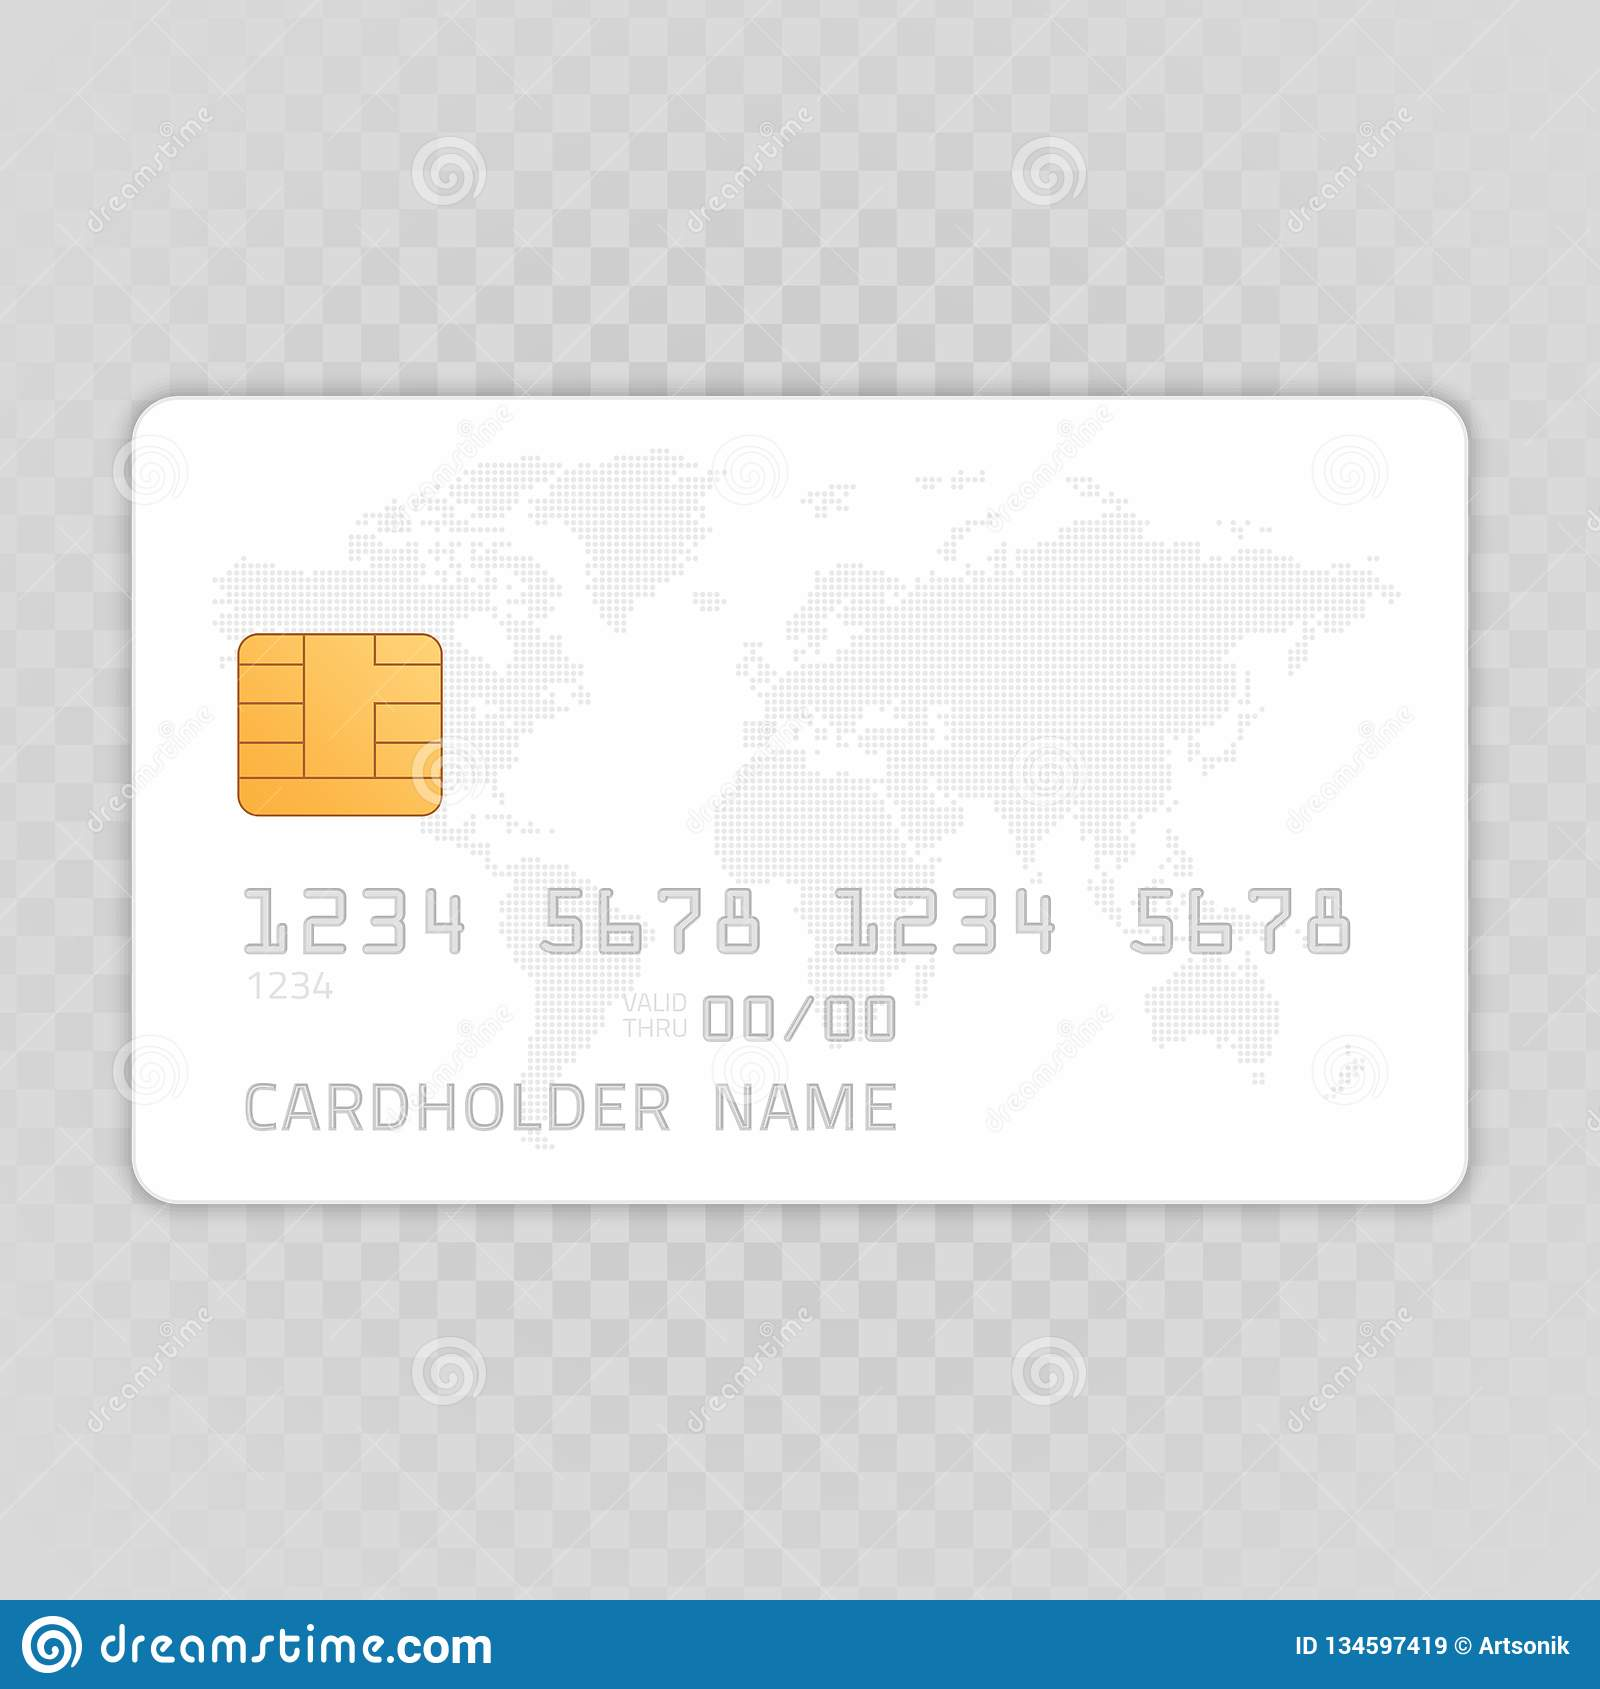 And make your own personalized american express gold credit card. Credit Card Template Cicim